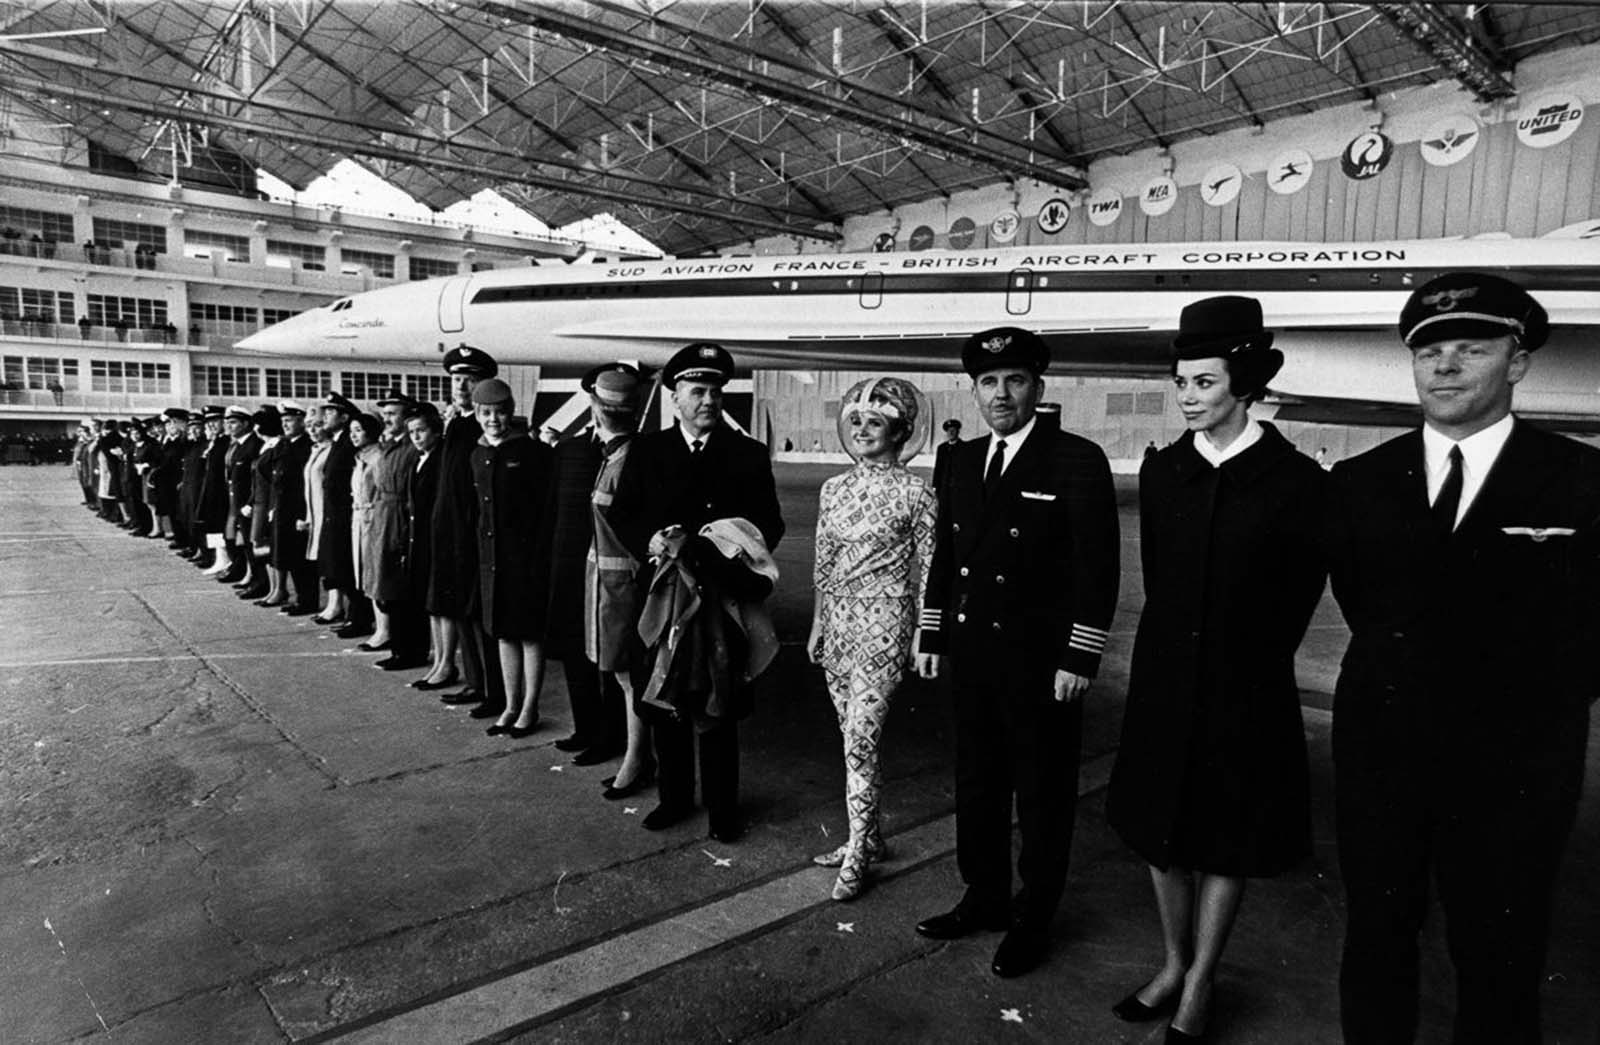 Pilots and flight attendants from airliners which have ordered the Concorde stand in front of the plane at the official roll-out ceremony in Toulouse. 1967.